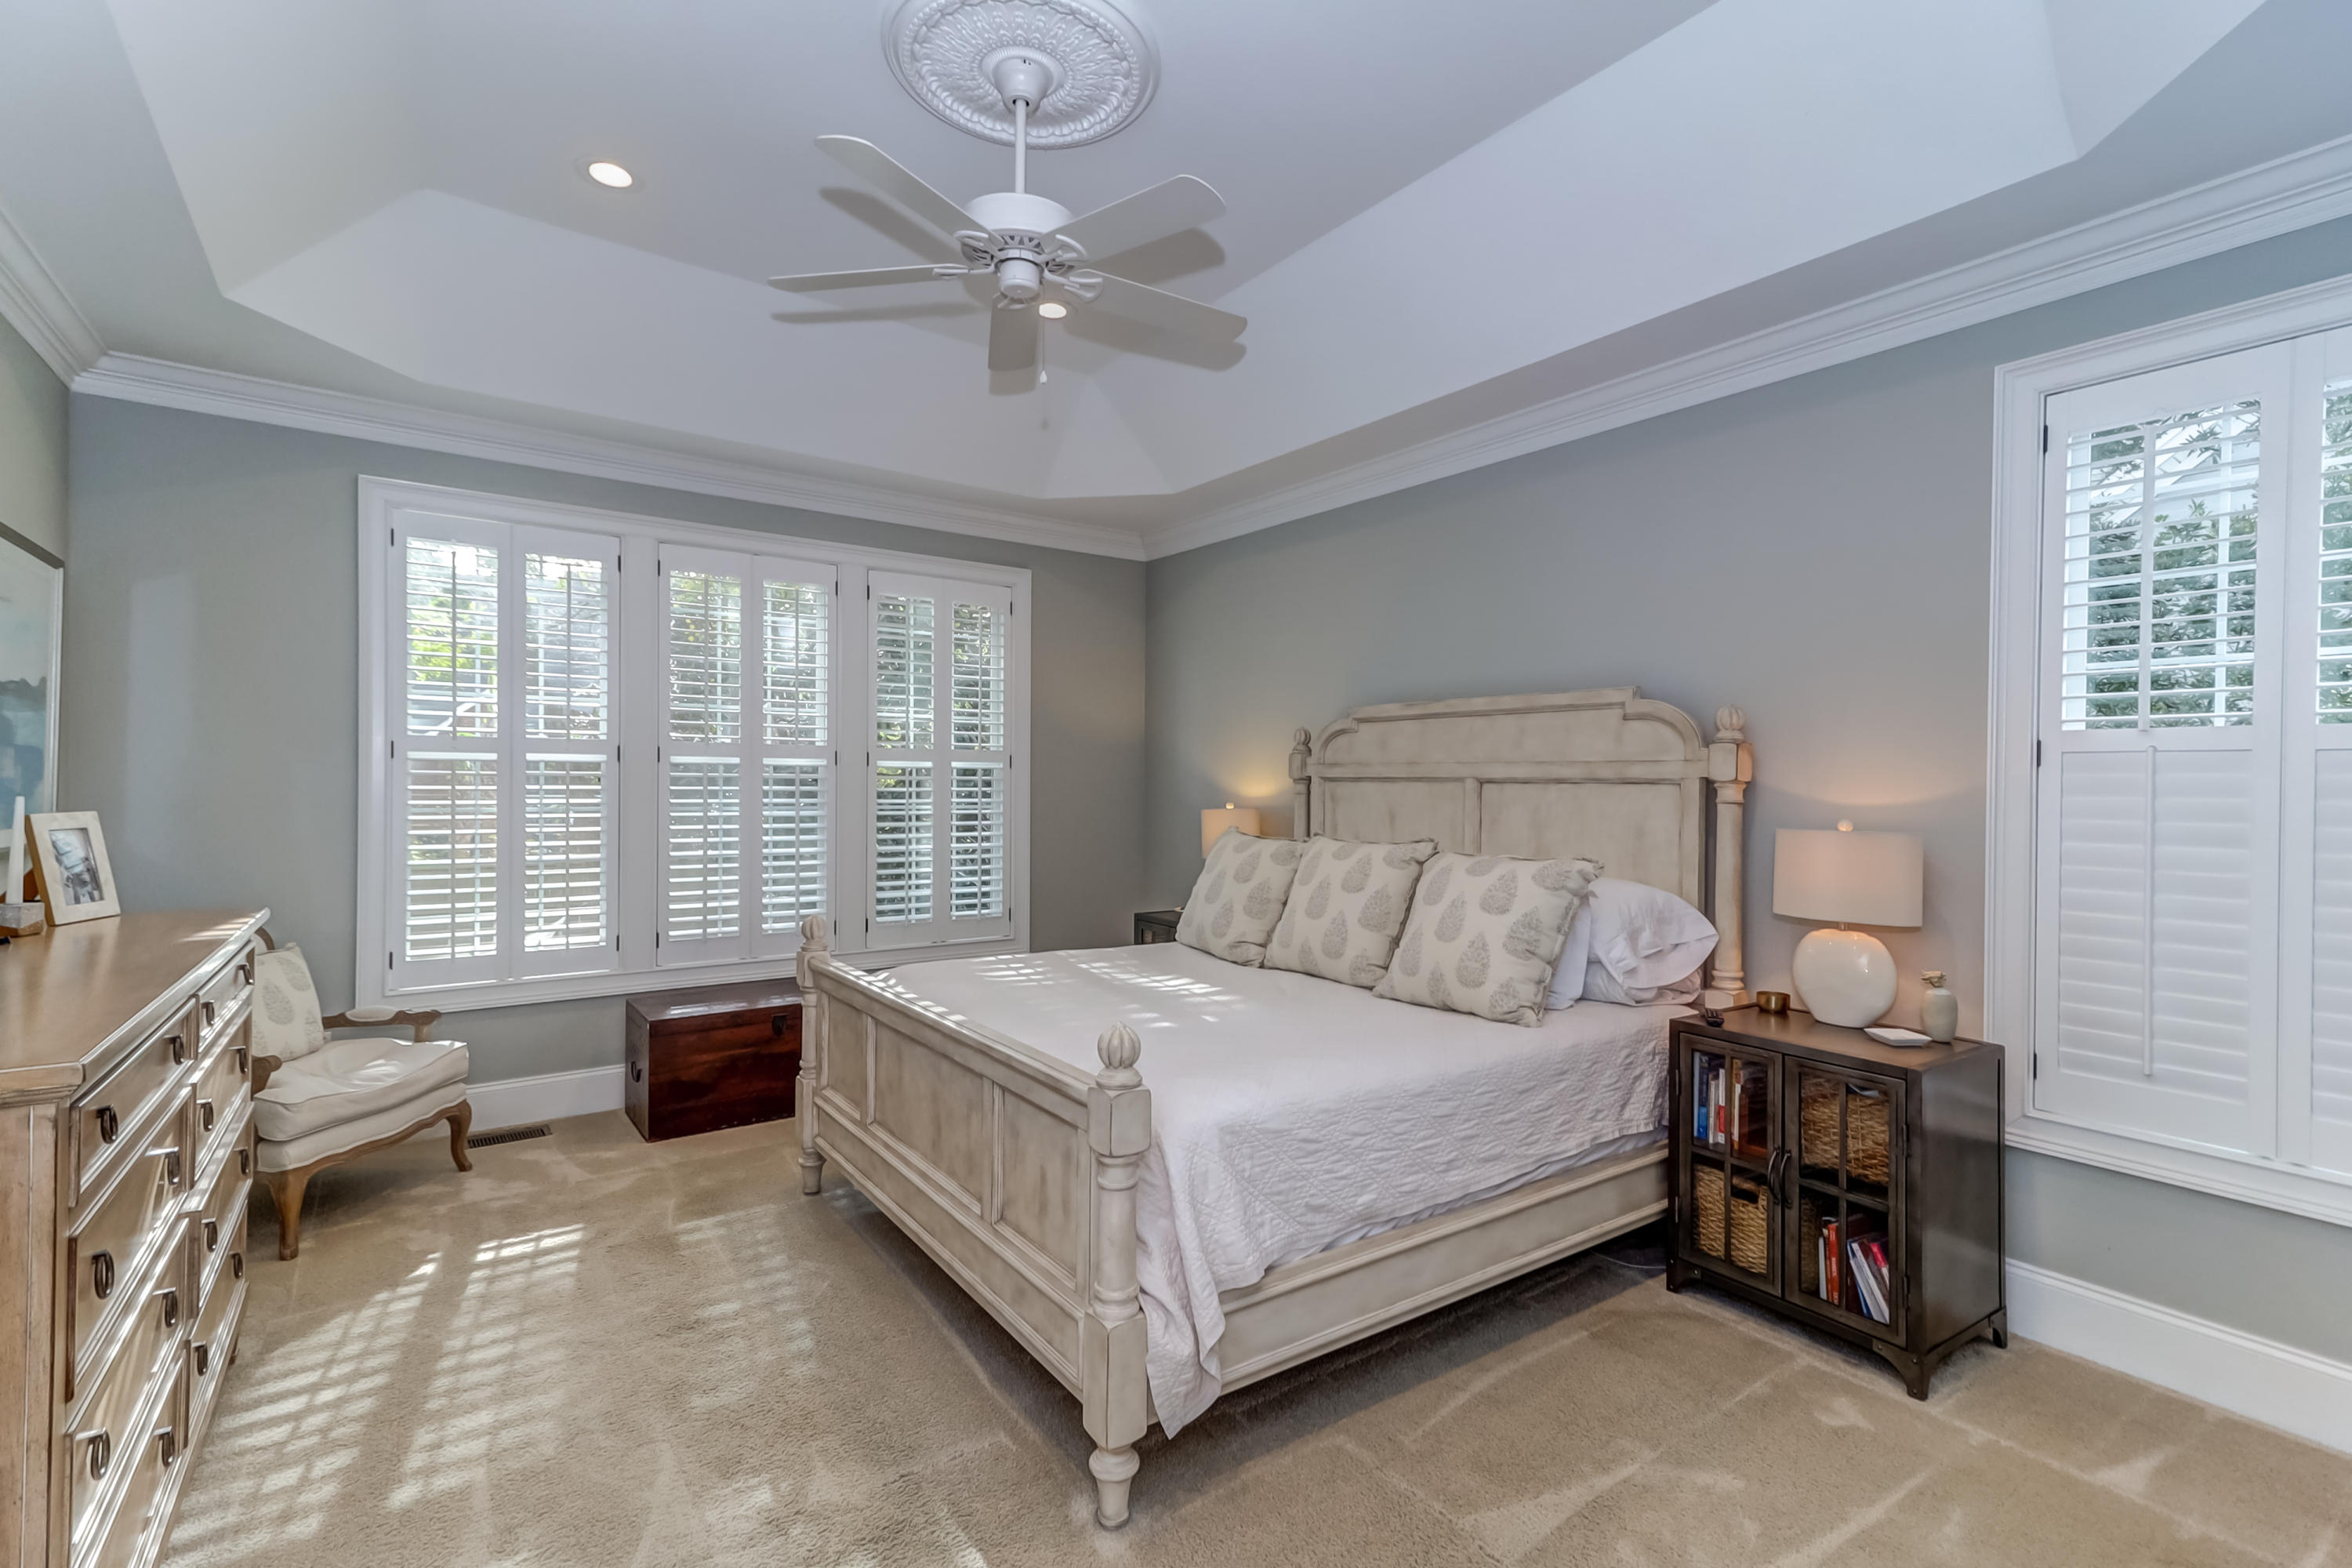 Woodward Pointe Homes For Sale - 657 White Chapel, Charleston, SC - 12